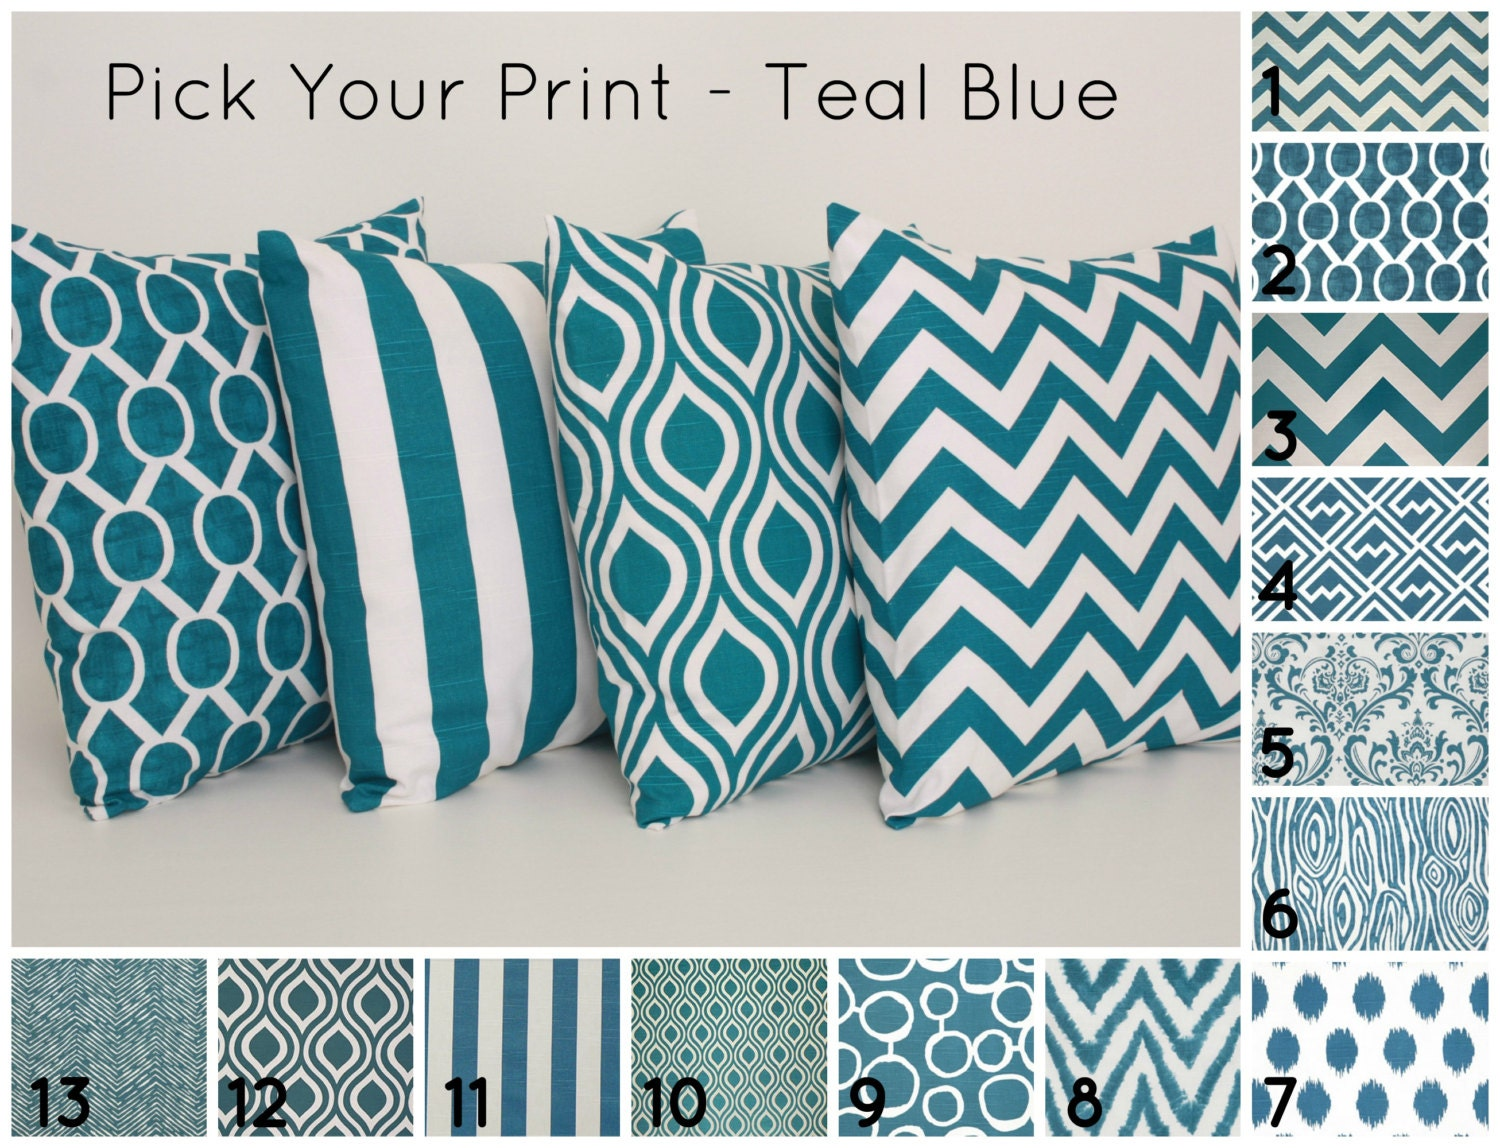 Etsy Teal Throw Pillow : Teal Throw Pillow Cover PICK YOUR PRINT 1 by DimensionsHomeDecor